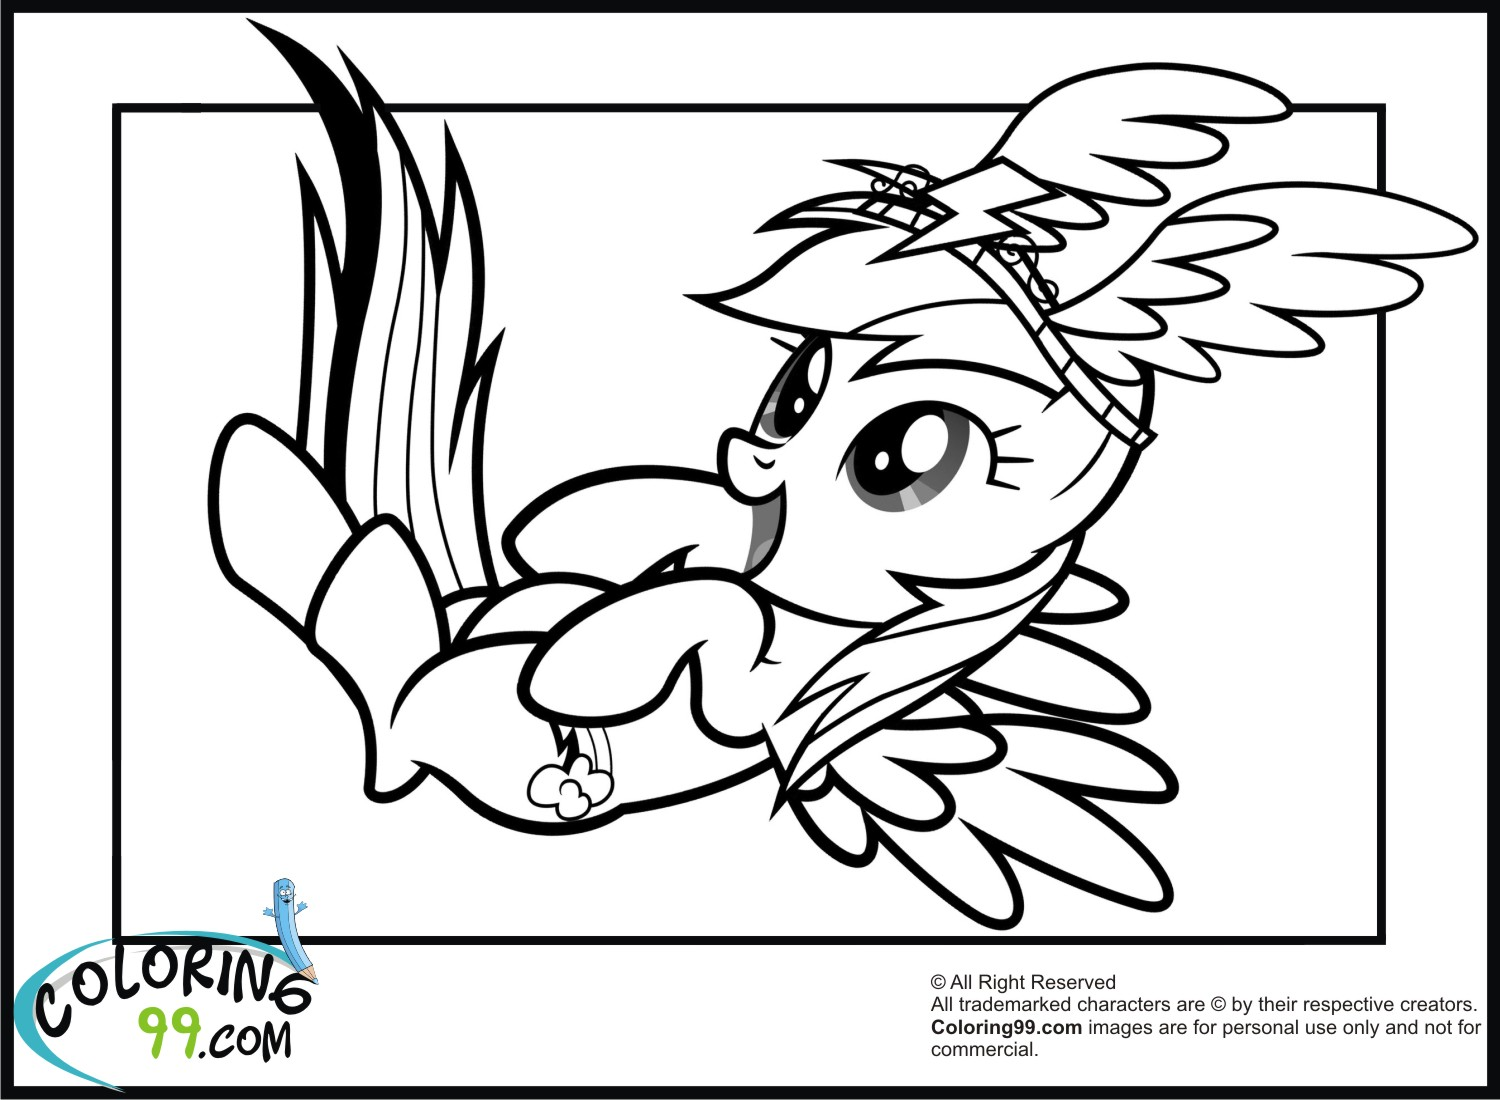 Rainbow Dash Coloring Pages | Minister Coloring